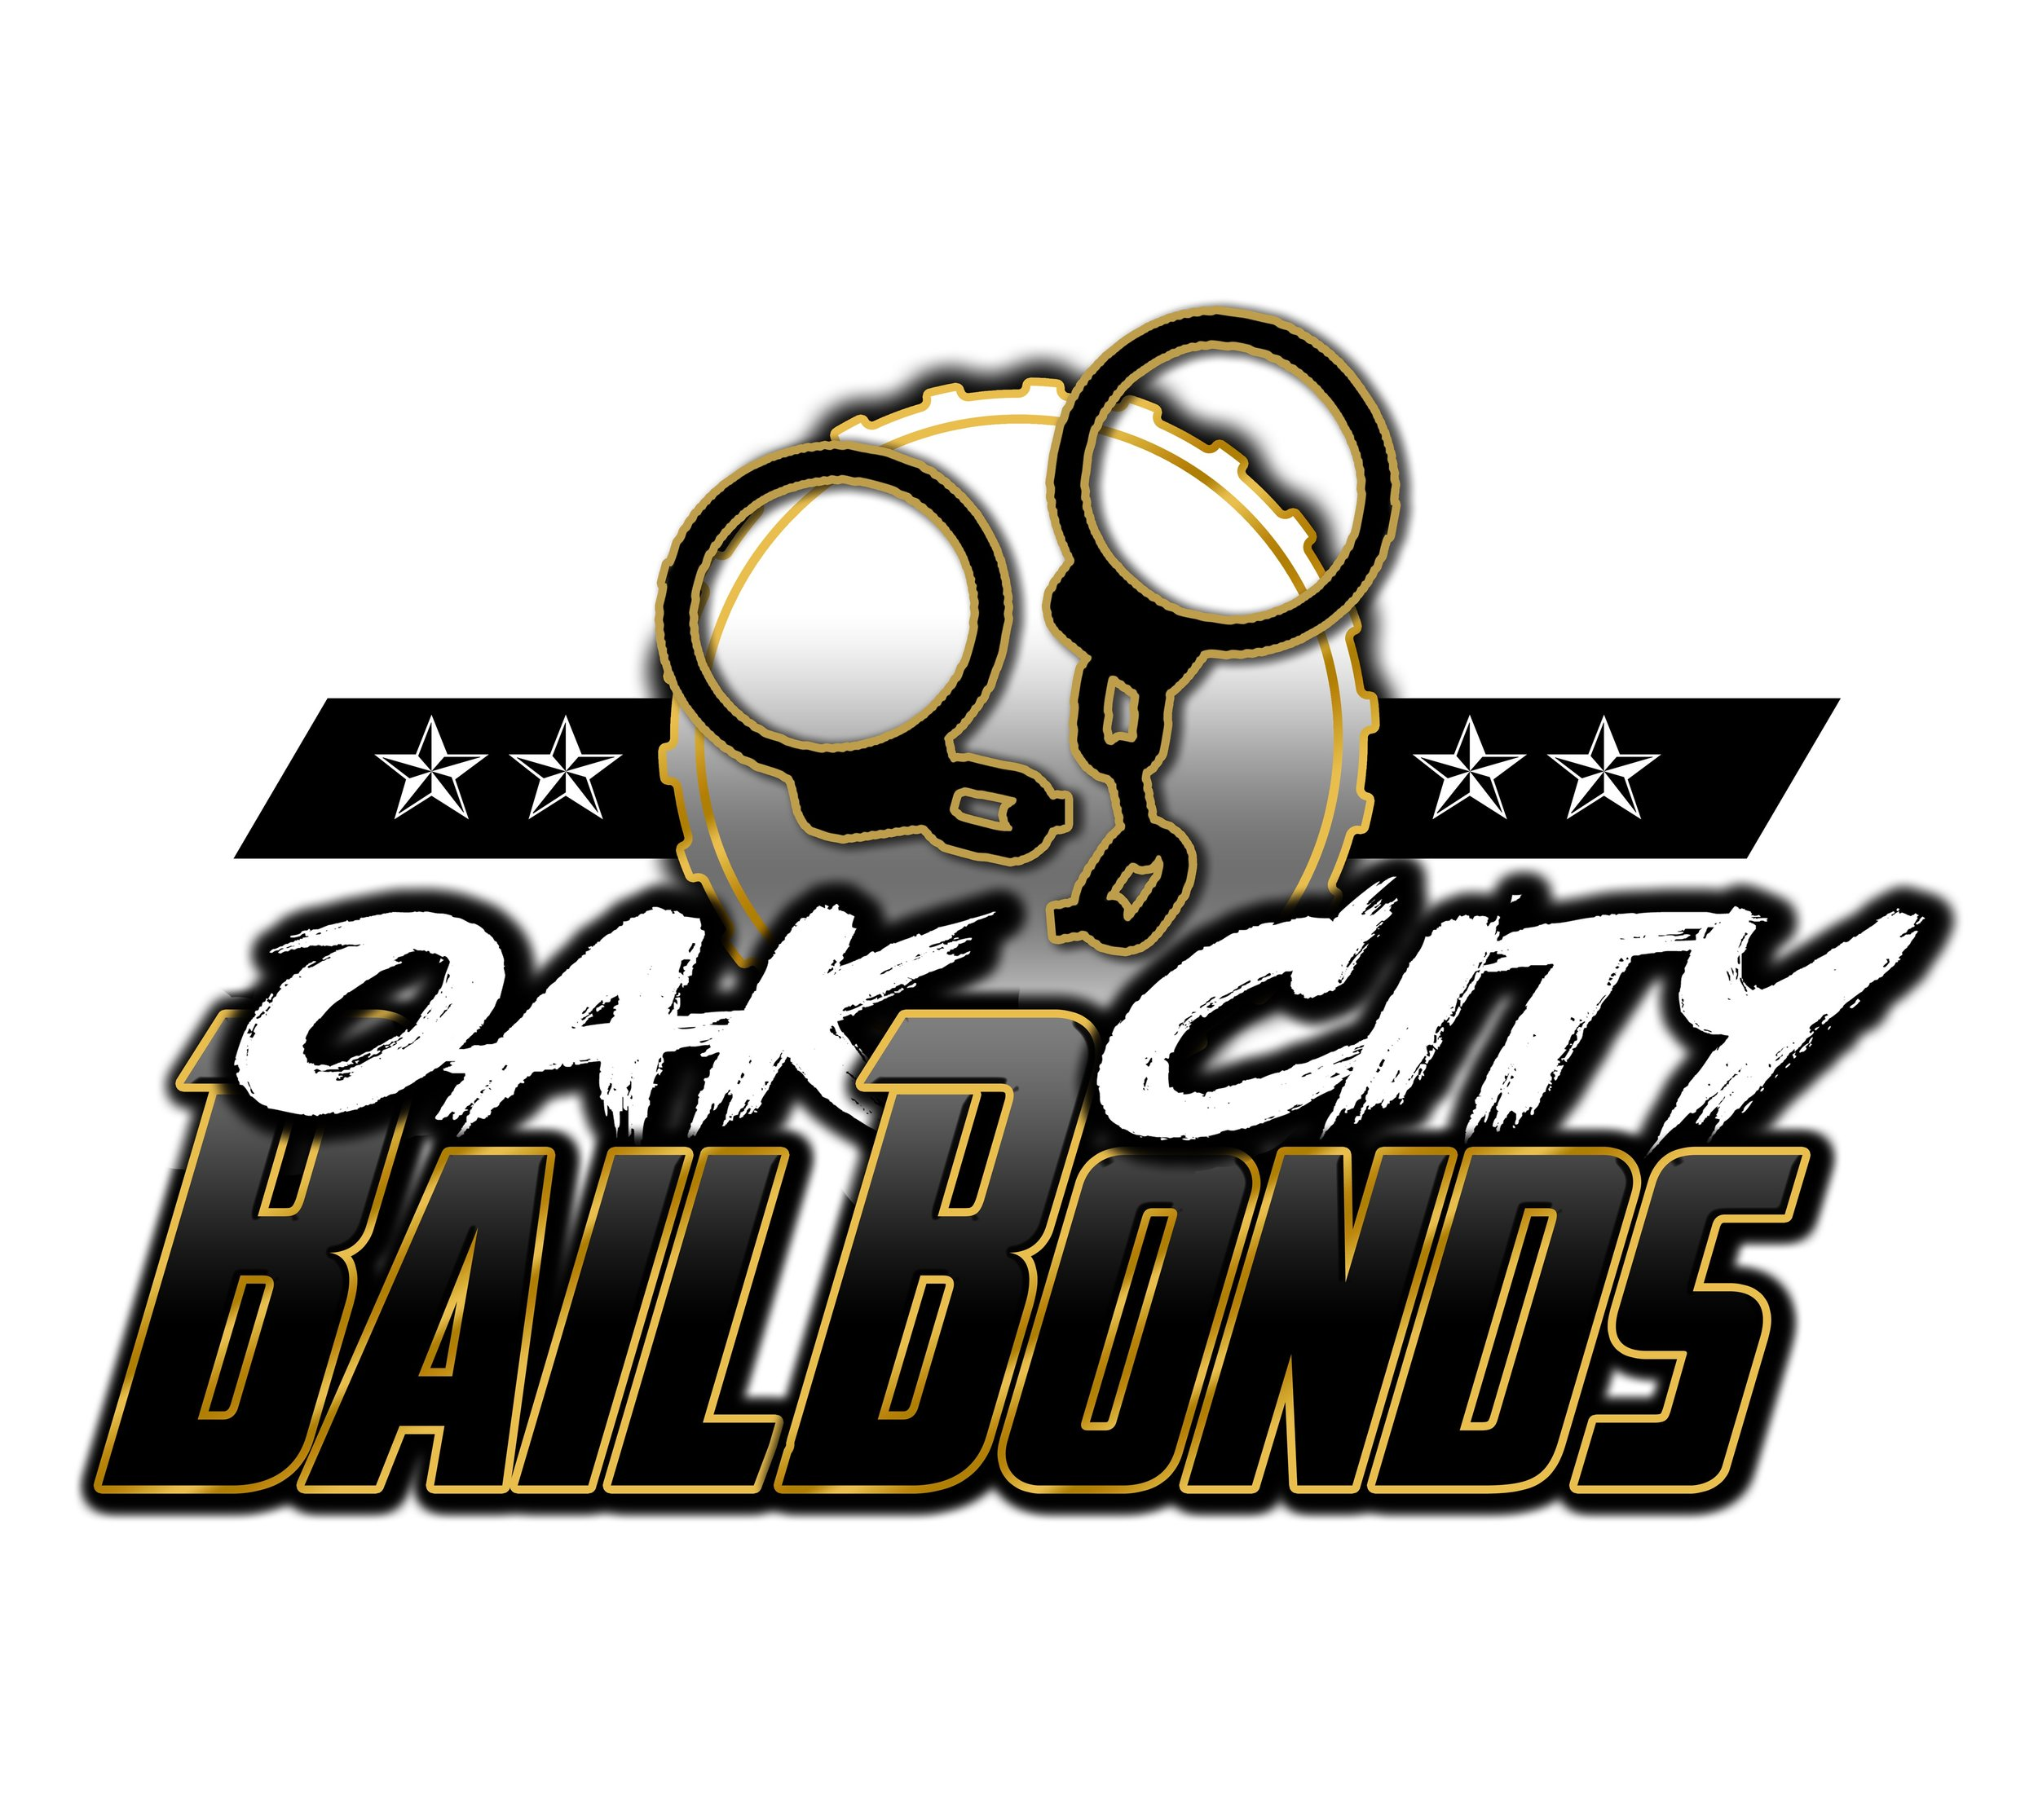 Oak City Bail Bonds - Oak City Bail Bonds is a full service bail bonding agency serving all 100 North Carolina counties, working alongside some of the best bail bondsmen in North Carolina. We provide low rates with a client promise of bail bonding by the book and fast, professional, friendly service. Although not many expect to have to utilize our services, if you find yourselves in a situation where you need us, we would be happy to help!